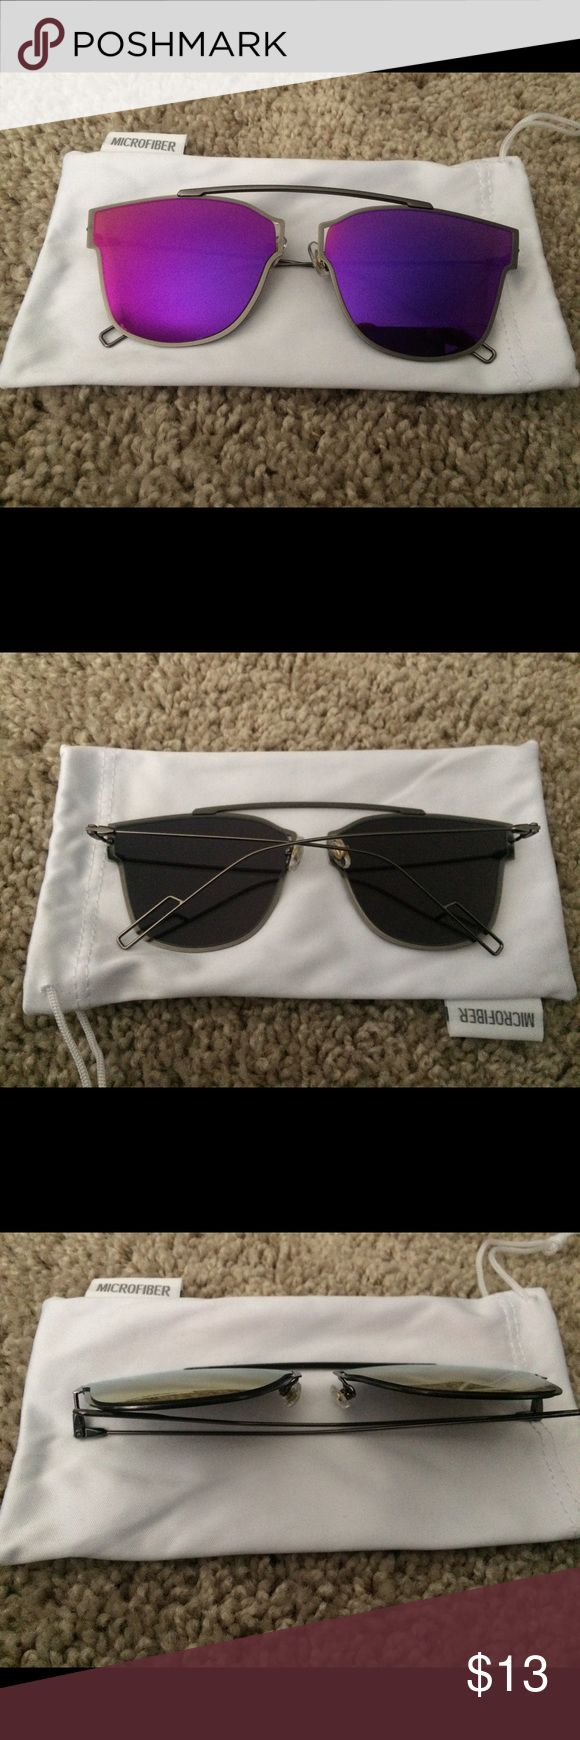 HOT WOMEN SUNGLASSES Same day/Next day shipping via USPS Accessories Glasses